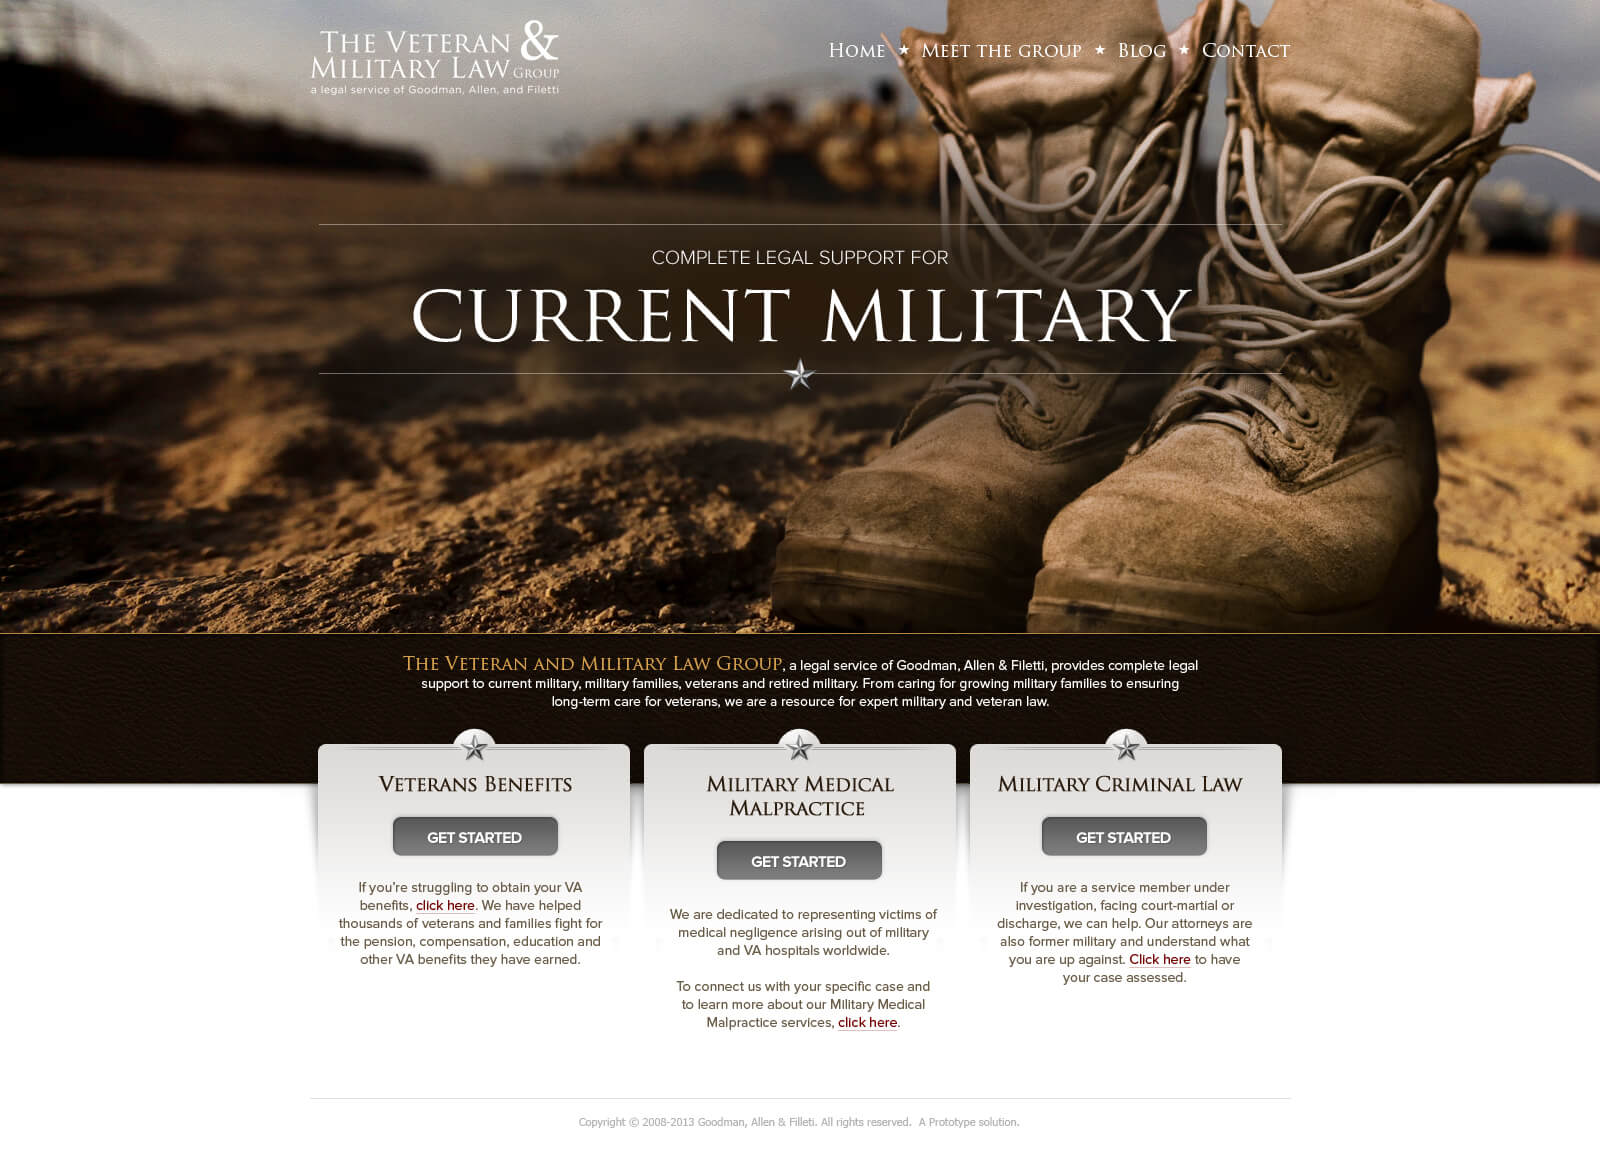 Goodman, Allen & Filetti Microsite